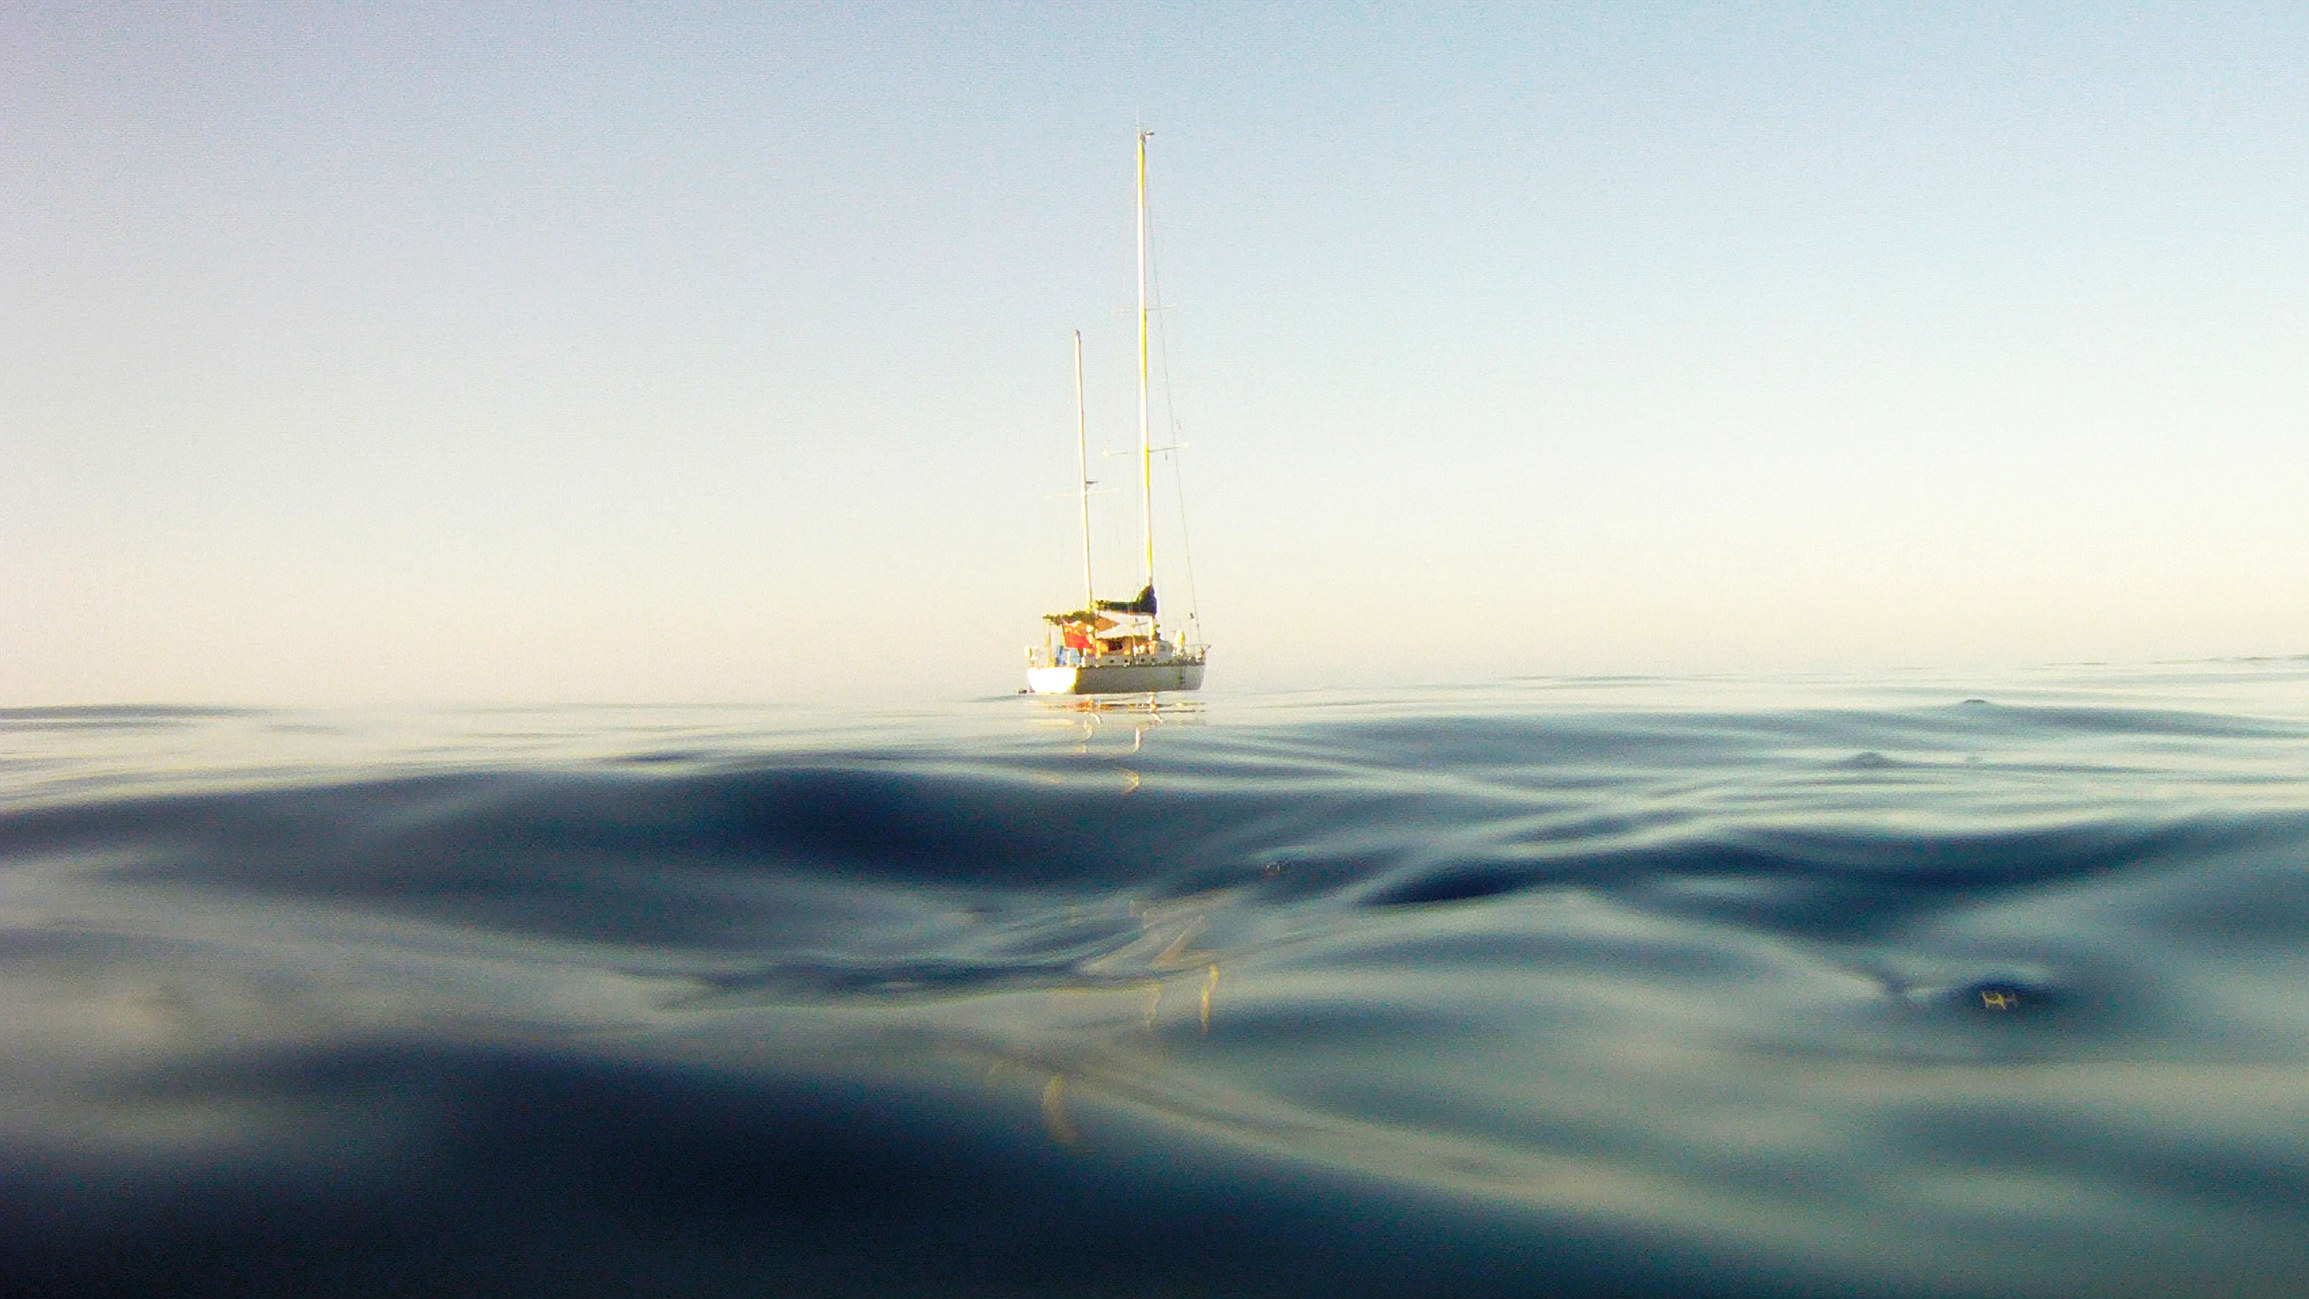 A sailboat in the middle of the ocean